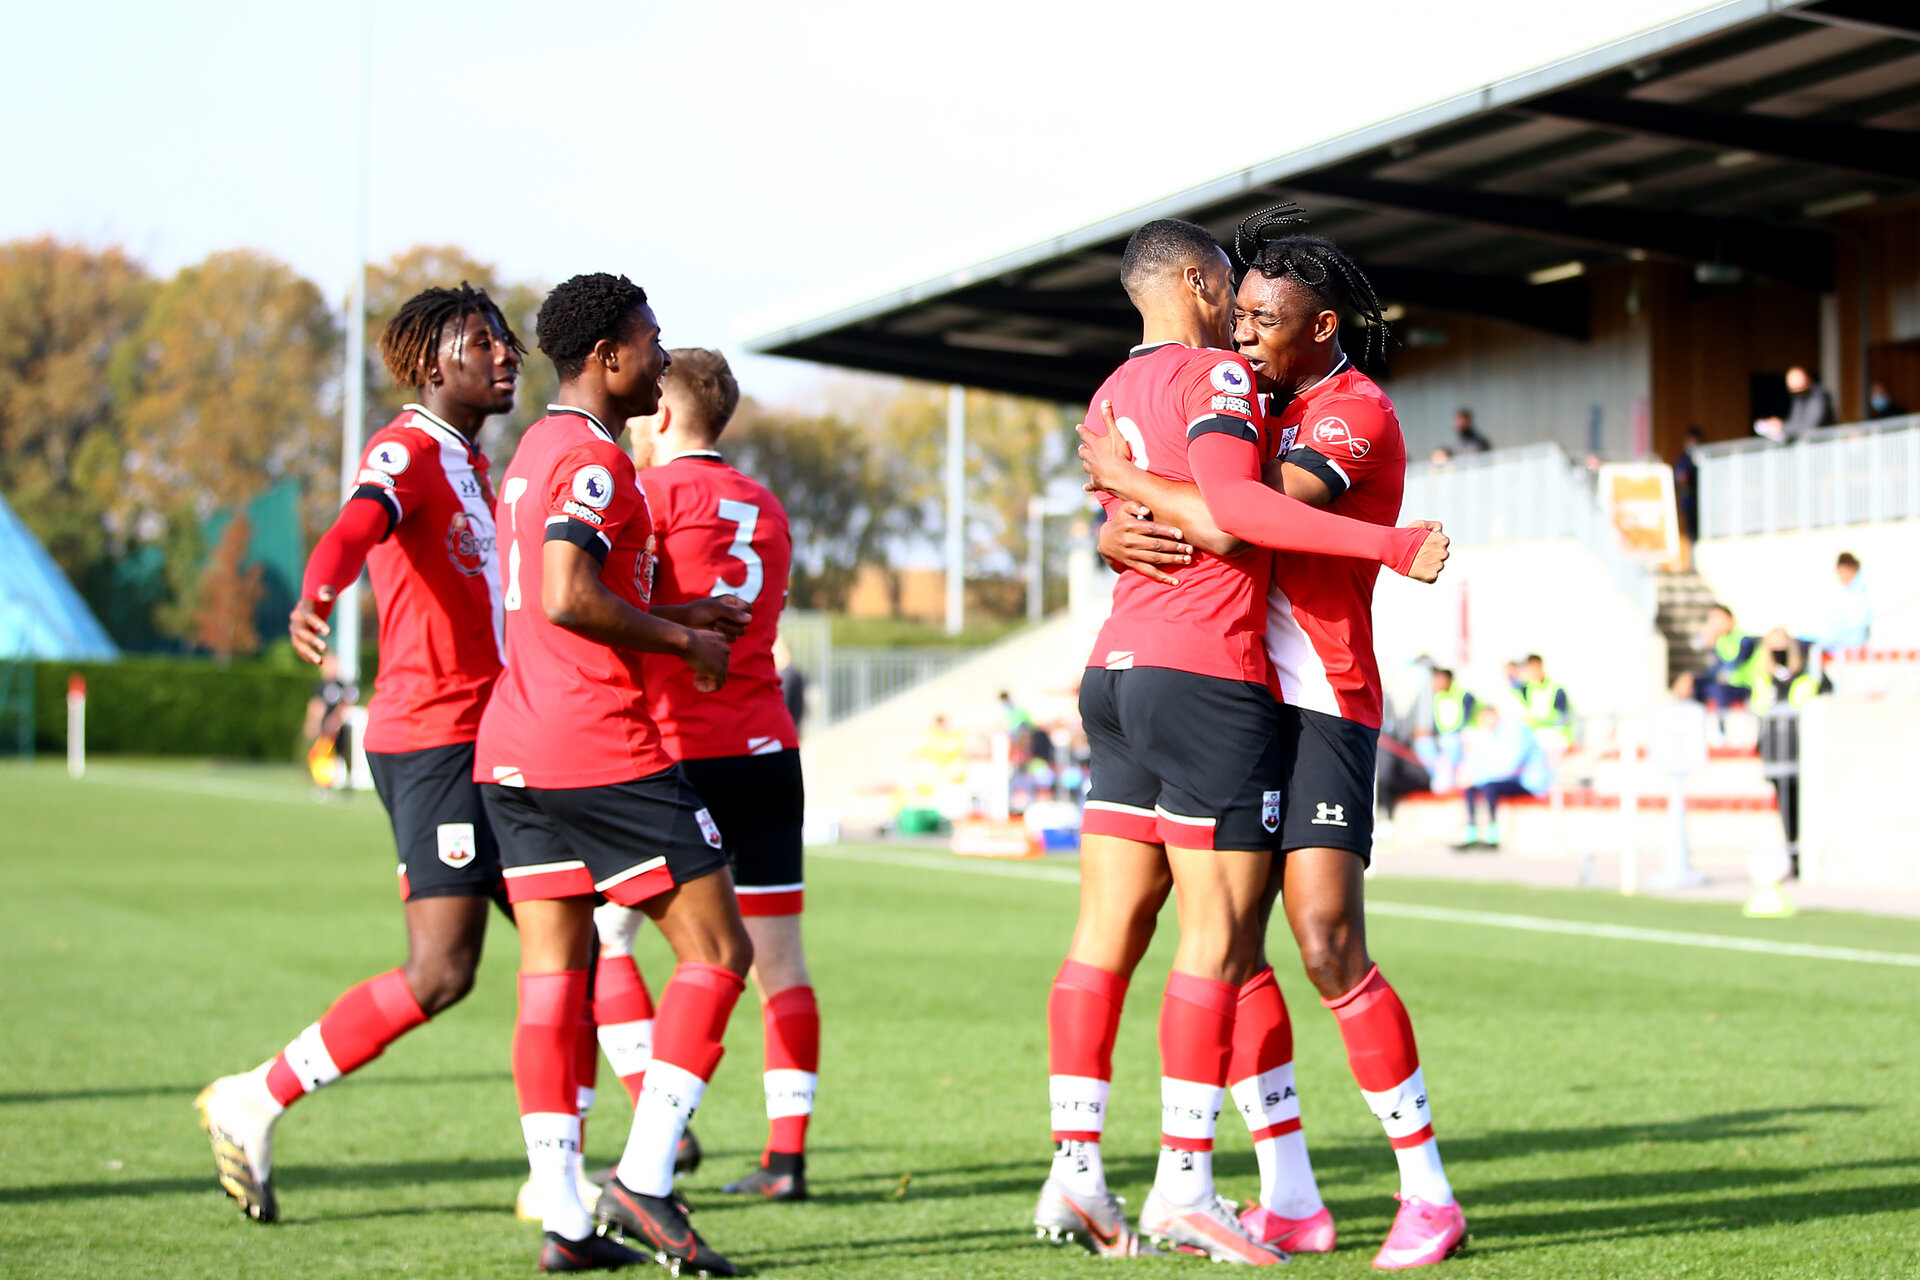 SOUTHAMPTON, ENGLAND - NOVEMBER 07: <<enter caption here>> during the Premier League 2 match between Southampton FC B Team and Manchester City at Staplewood Training Ground on November 07, 2020 in Southampton, England. (Photo by Isabelle Field/Southampton FC via Getty Images) (Photo by Isabelle Field/Isabelle Field)